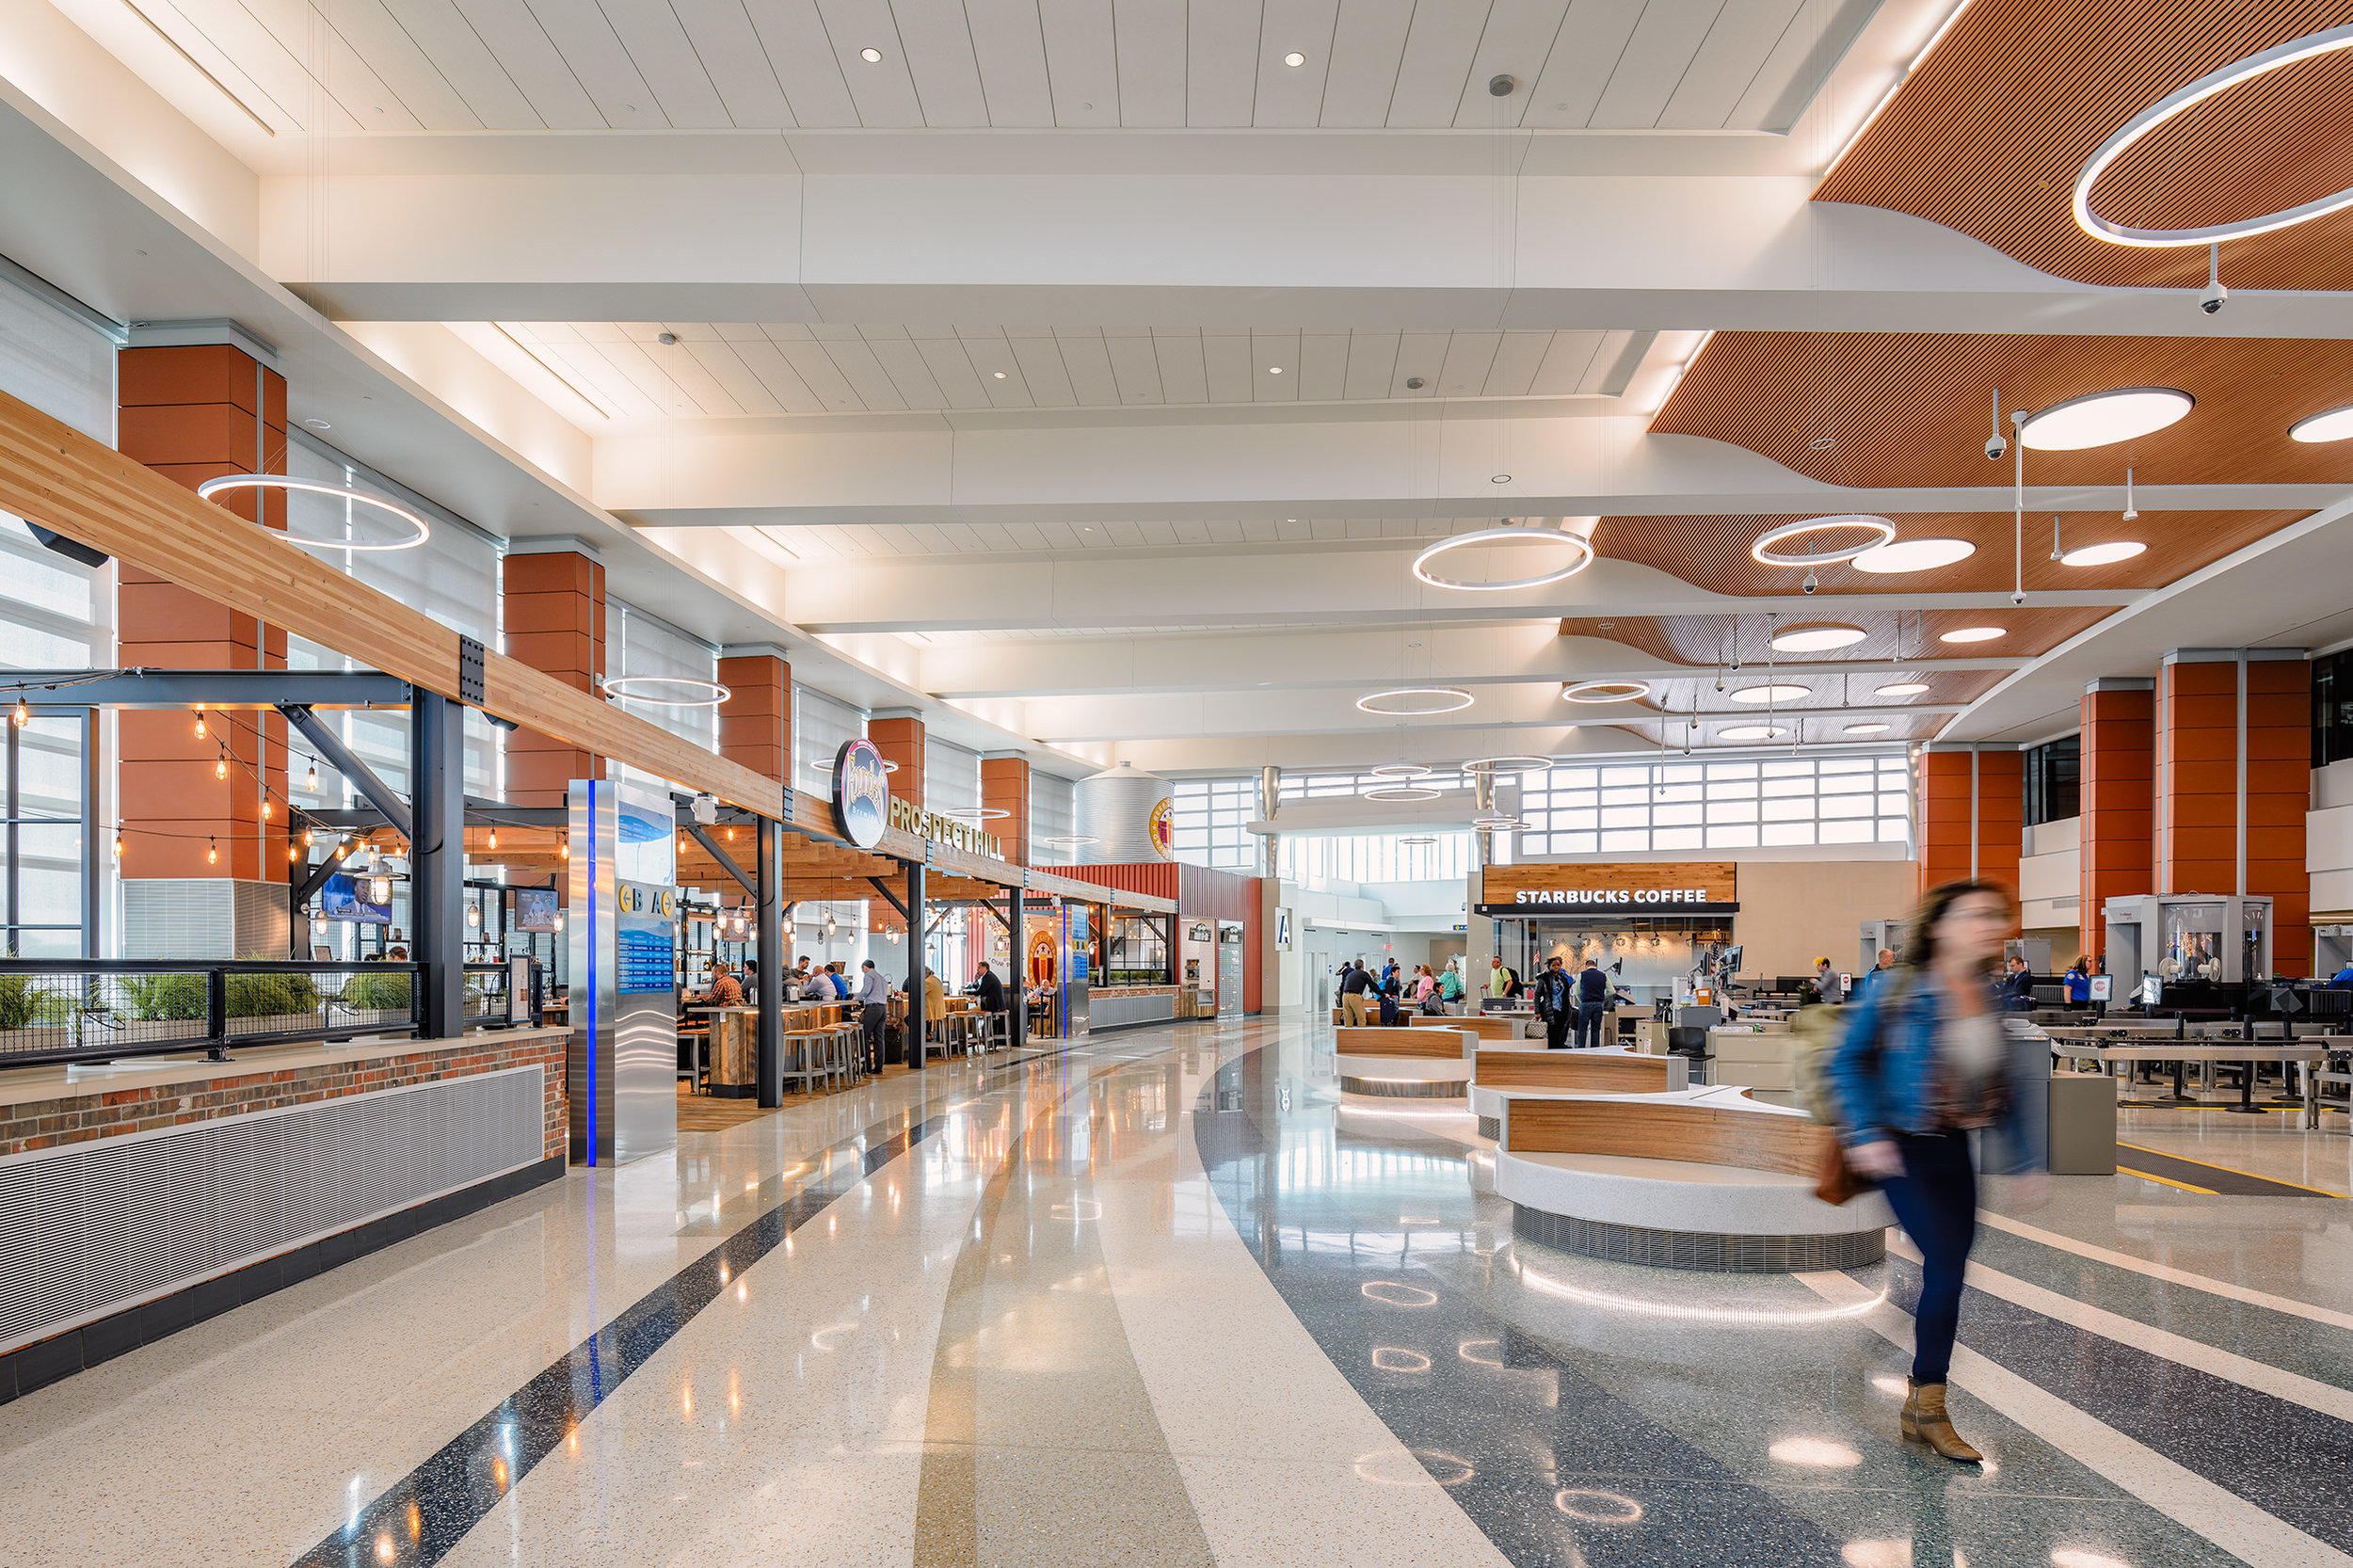 Gerald R. Ford International Airport | Grand Rapids, MI • photographed for Alliiance Architects